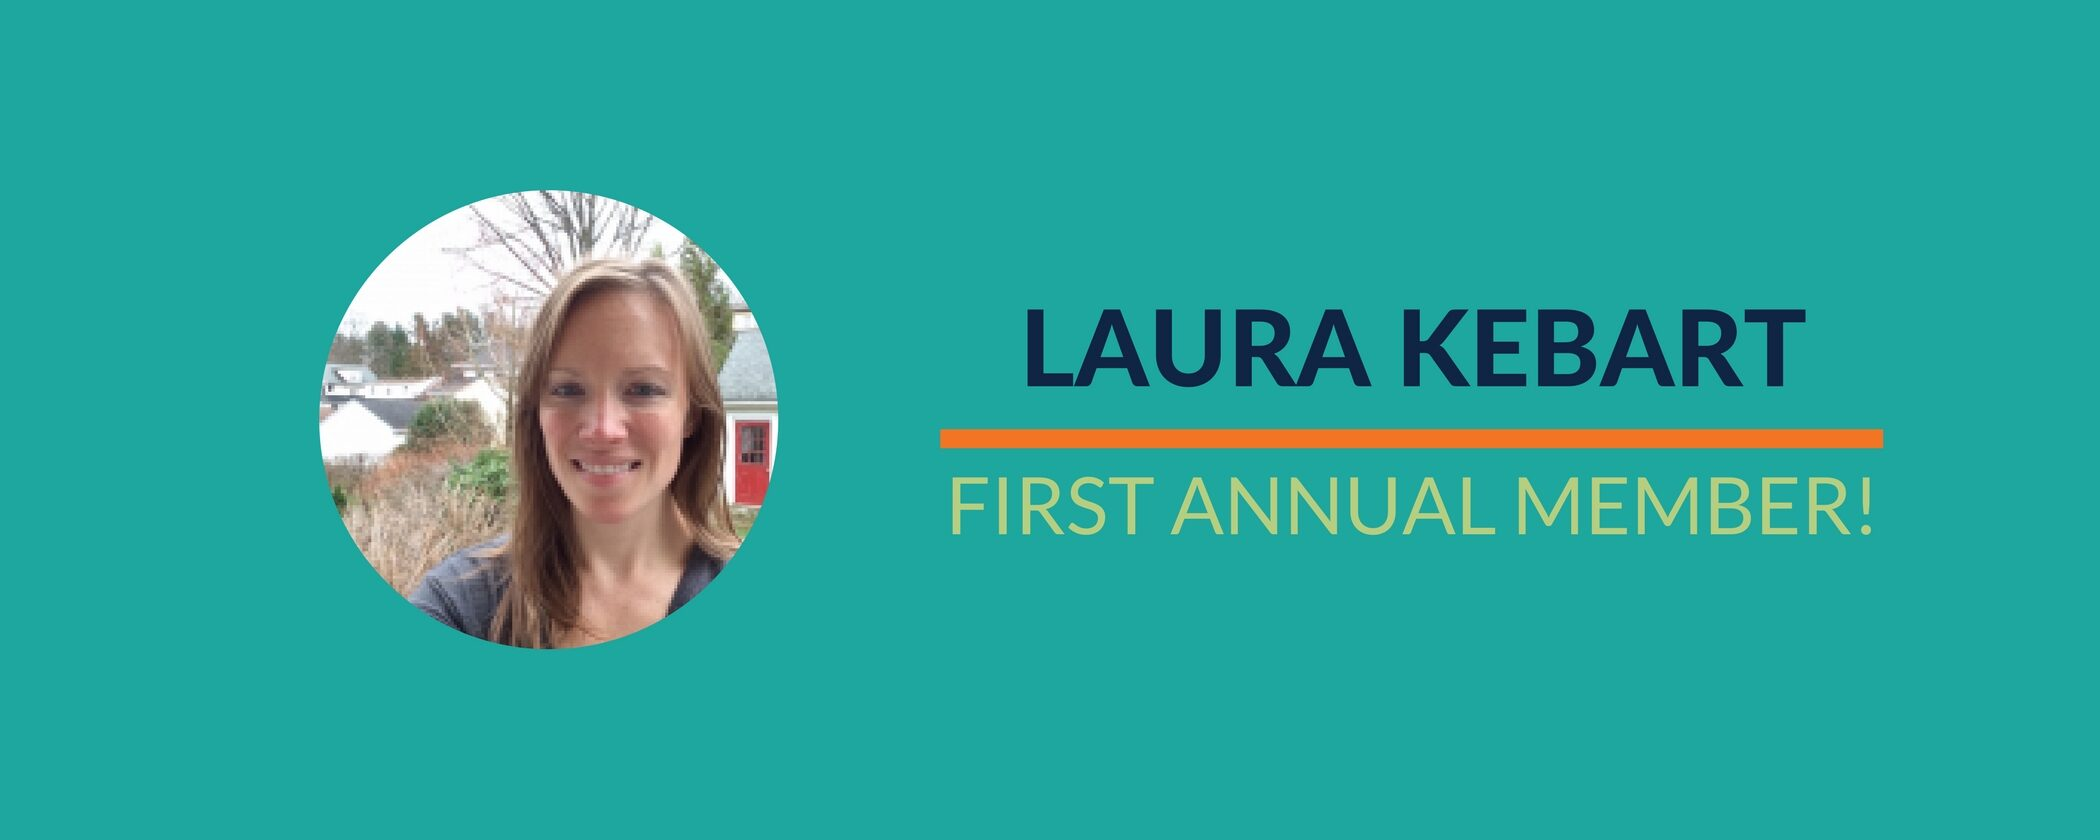 Success Story: Laura's First Annual Member!